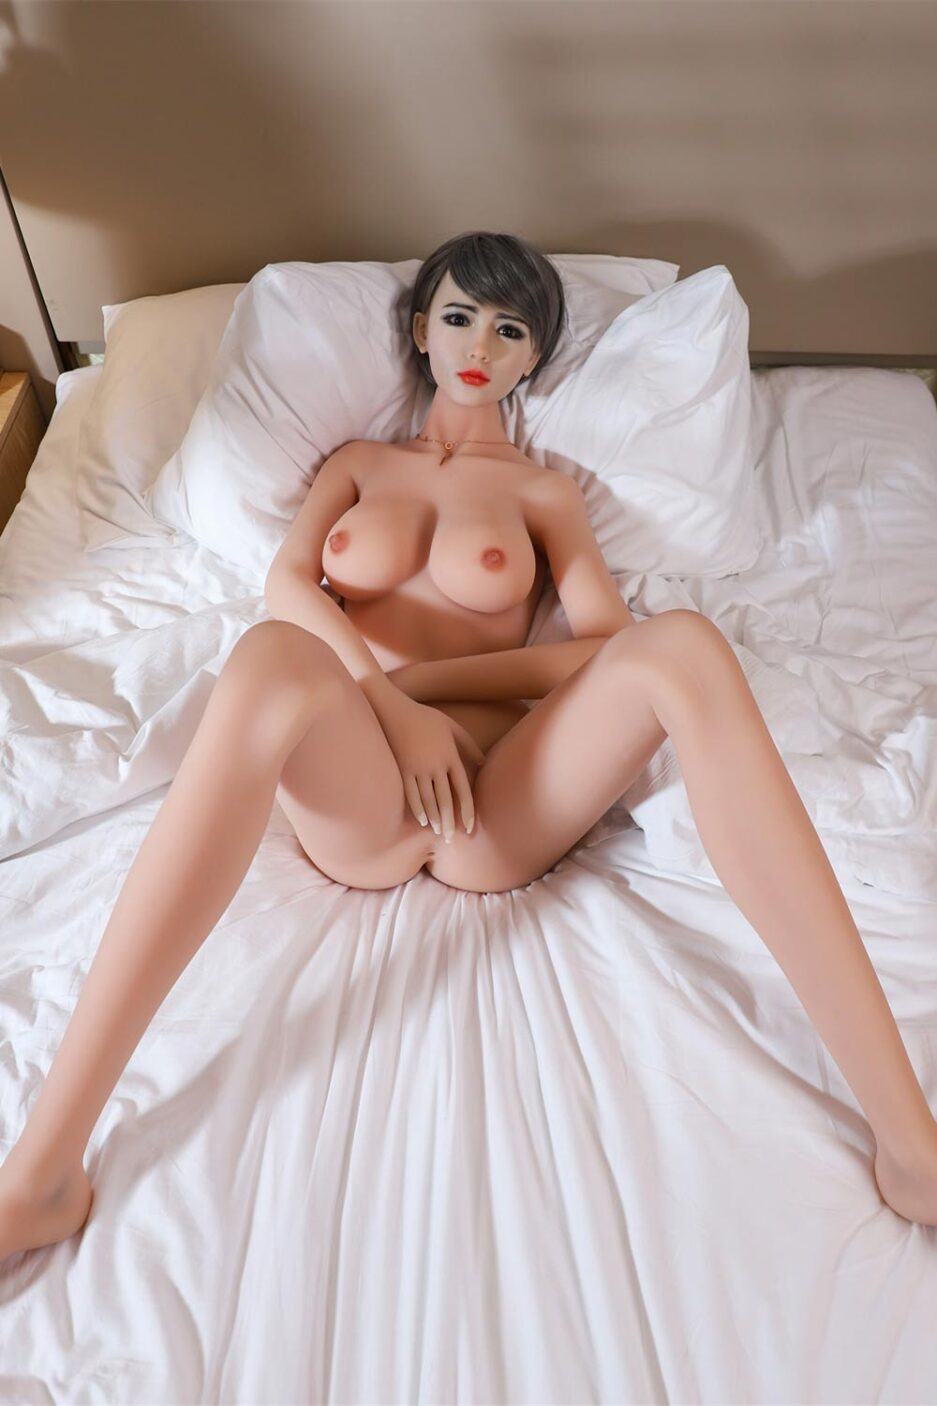 Silicone sex doll with open legs and hands to block vagina